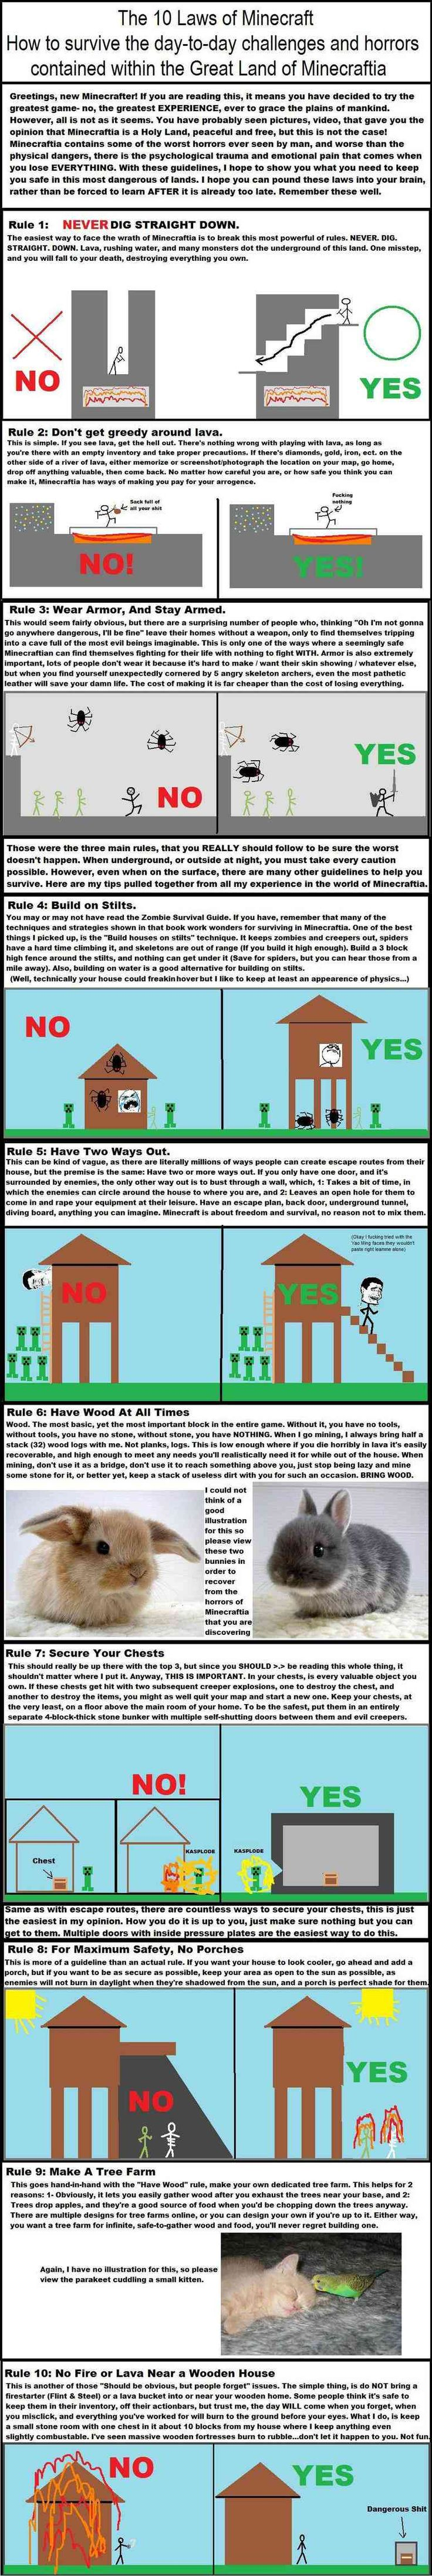 The basic rules of Minecraft. If you want to survive, that is. And these are all true